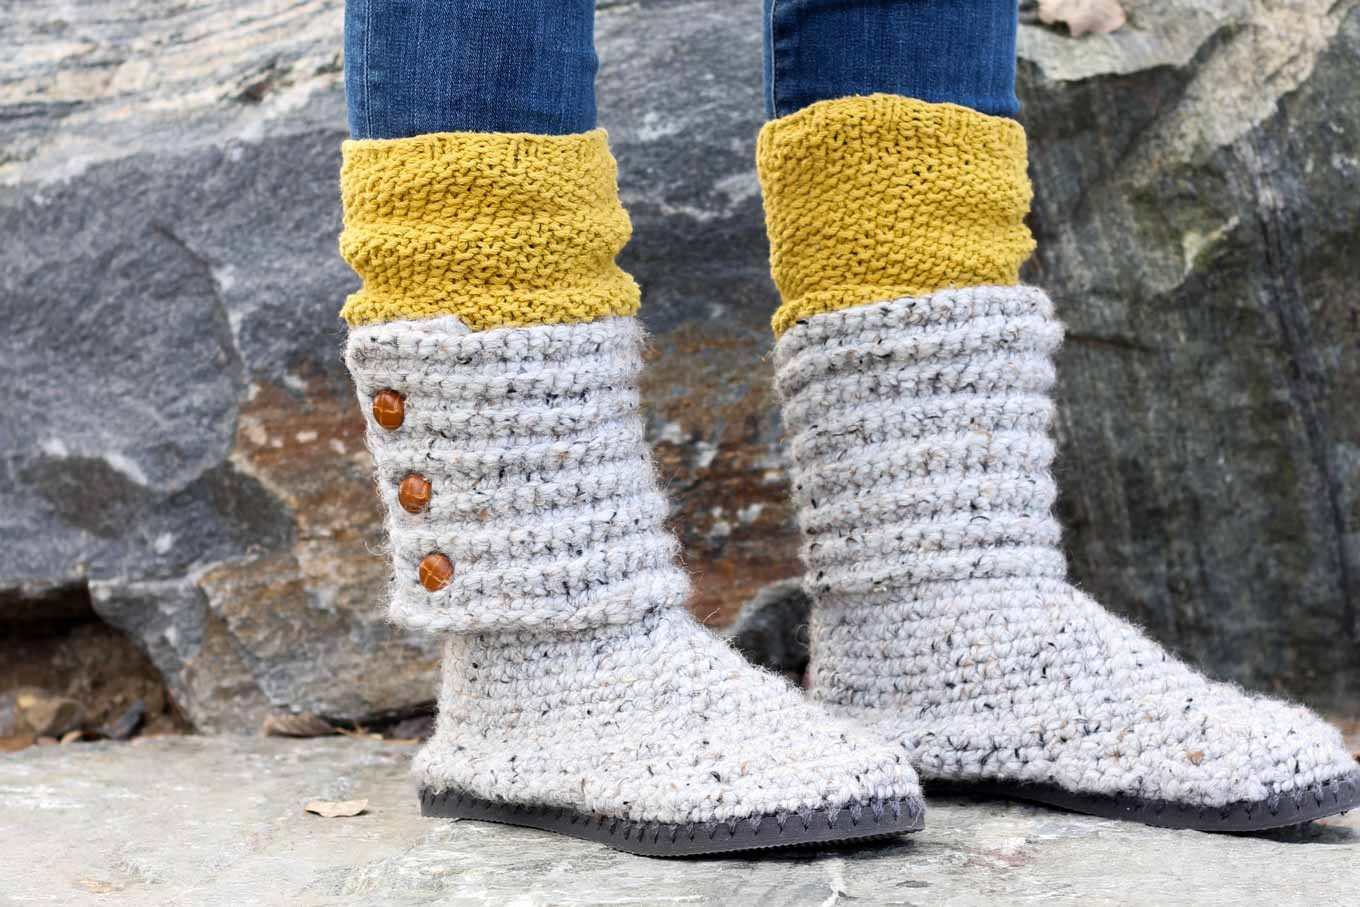 With this free pattern and crochet video tutorial you can make your own look-a-like crochet Uggs! These crochet boots with flip flops for soles make great outdoor shoes or house slippers. Made with Lion Brand Wool Ease Thick and Quick in Grey Marble.